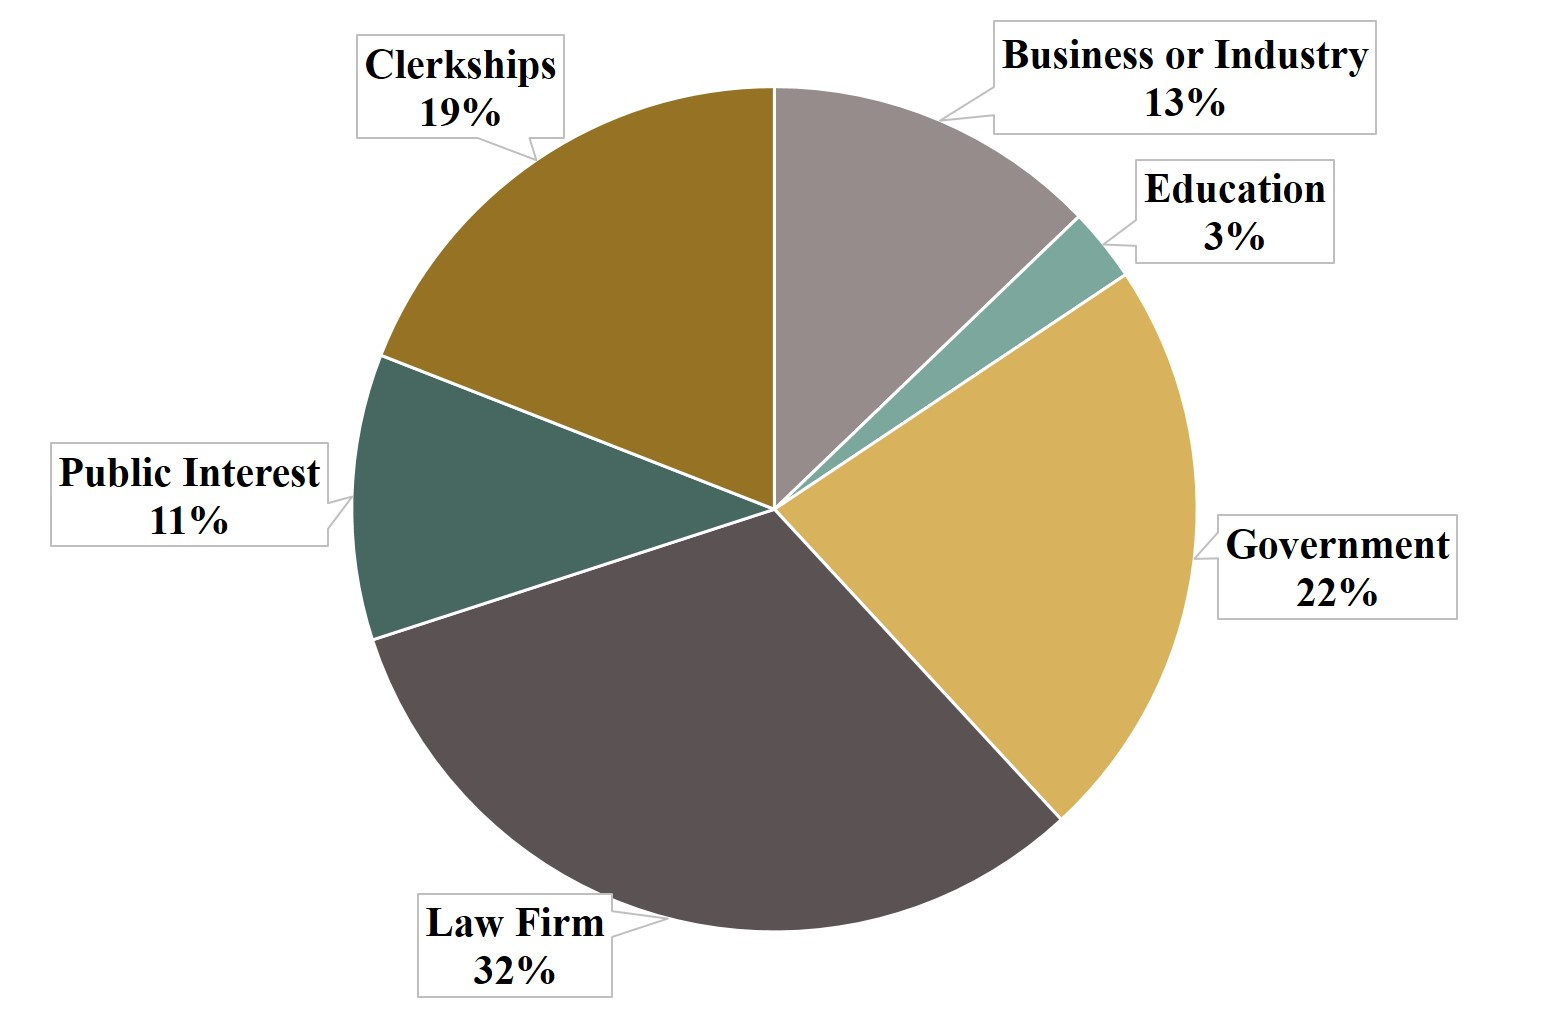 number of graduates employed by sector in 2016: Business or Industry: 41 Education: 9 Government: 72 Law Firm: 102 Public Interest: 35 Clerkships: 61